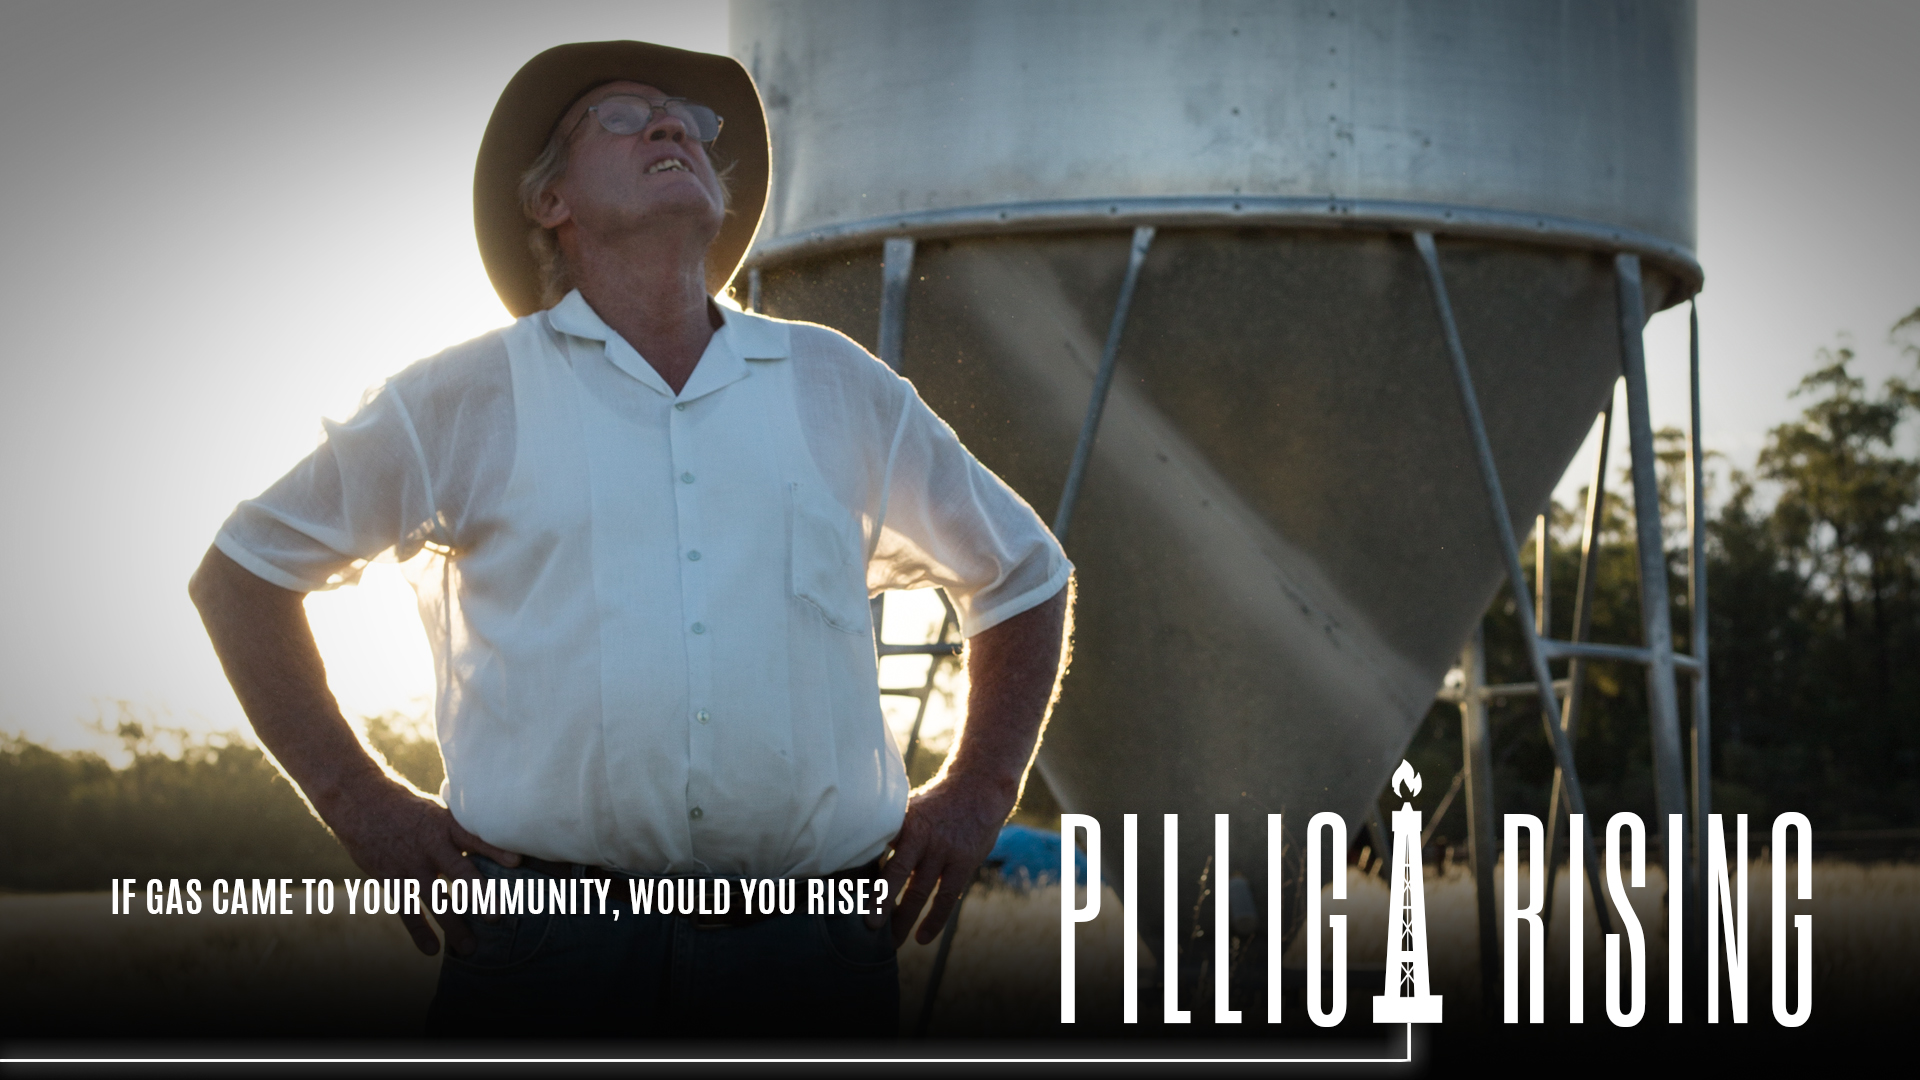 Pilliga Rising - If gas came to your community, would you rise?